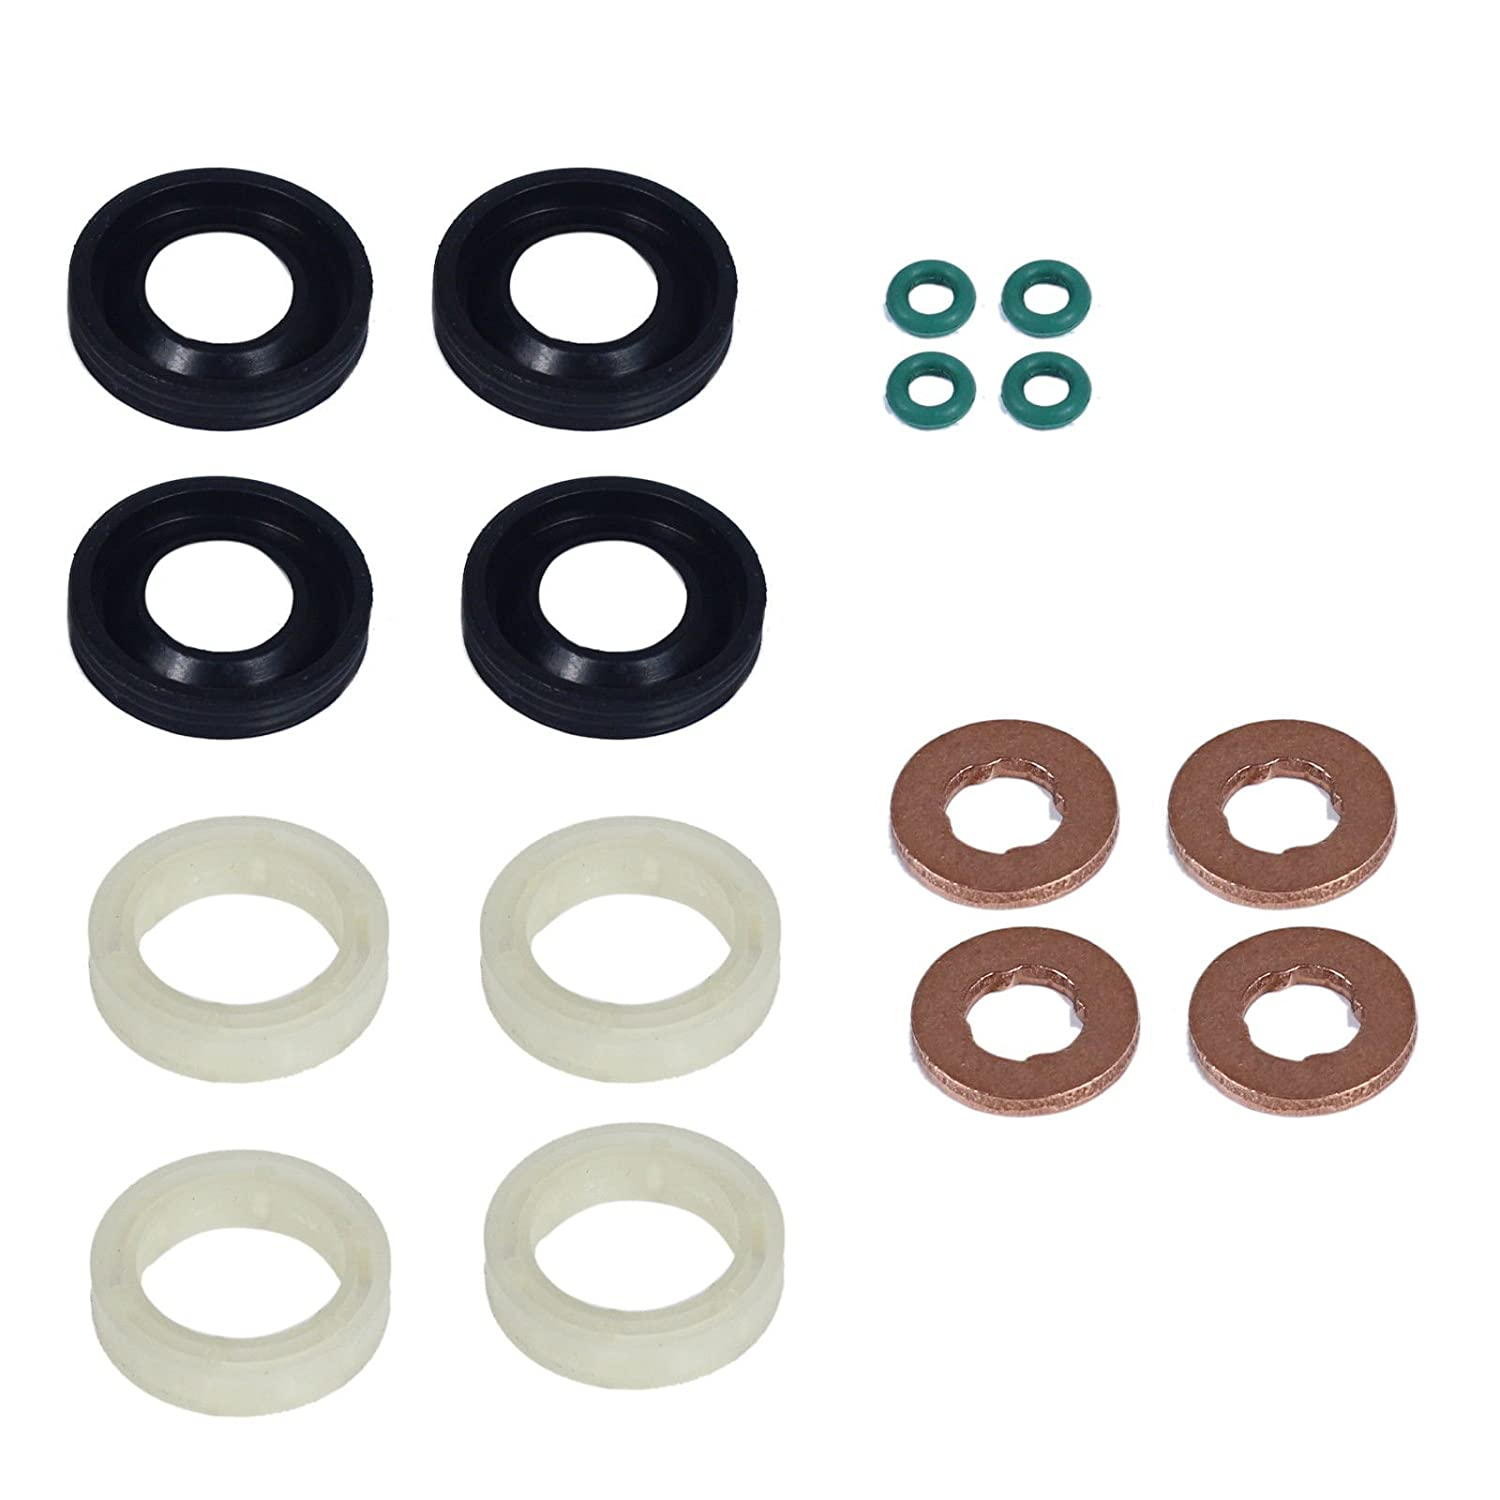 Fuel Injector Seal Washer O-Ring Protector Set 3M5Q9F593KIT/1432205/1314368/1233683/198185/1982A0/198299/1609848080/1609848280 ATY